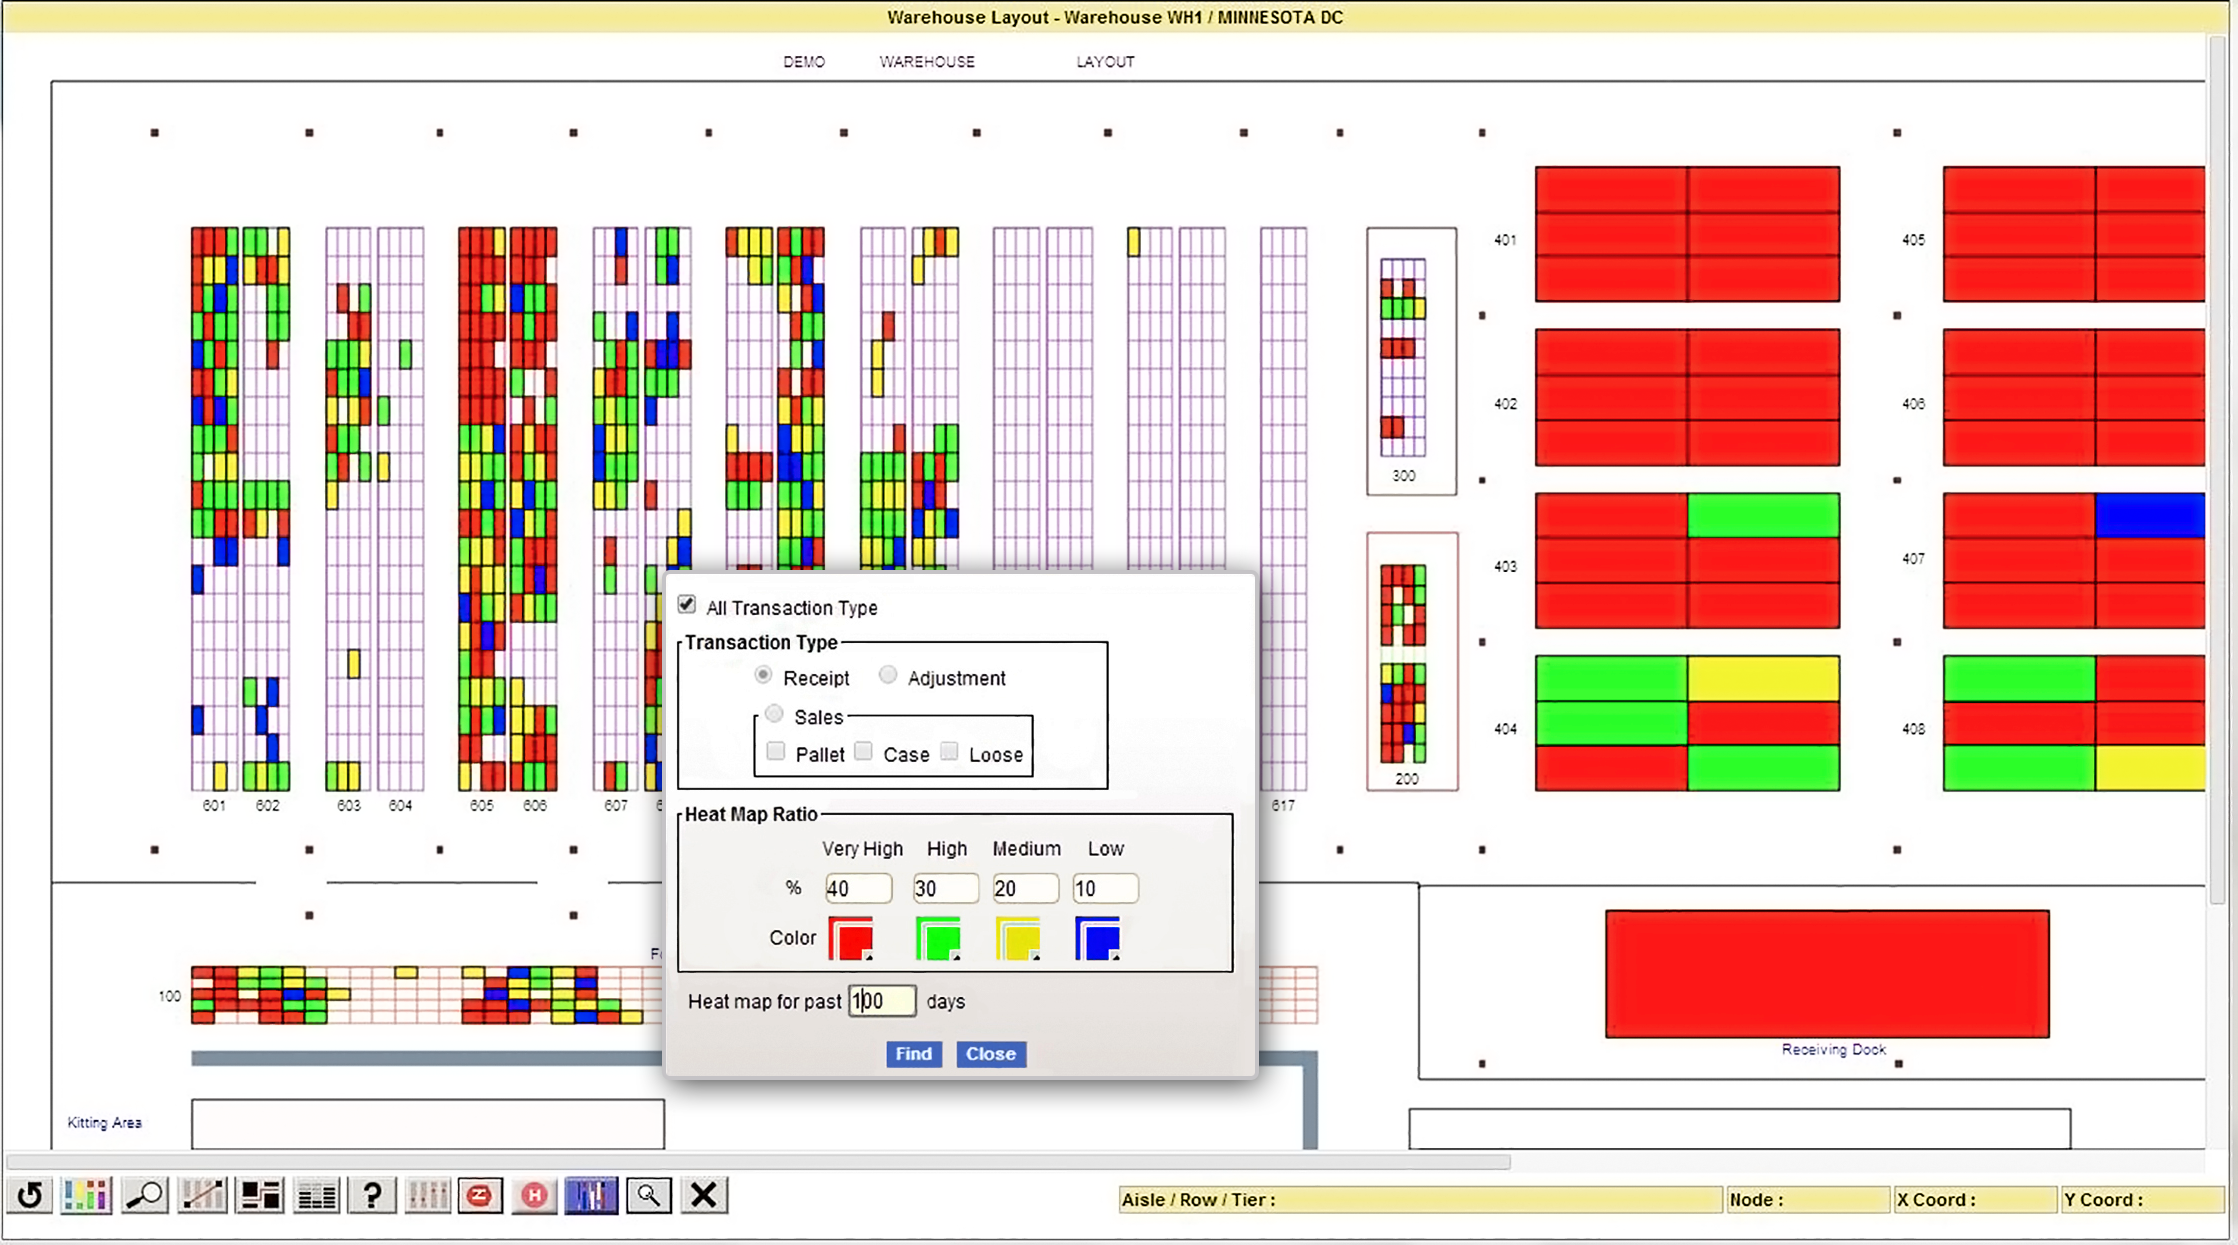 Softeon Warehouse Management System (WMS) Software - Warehouse Layout